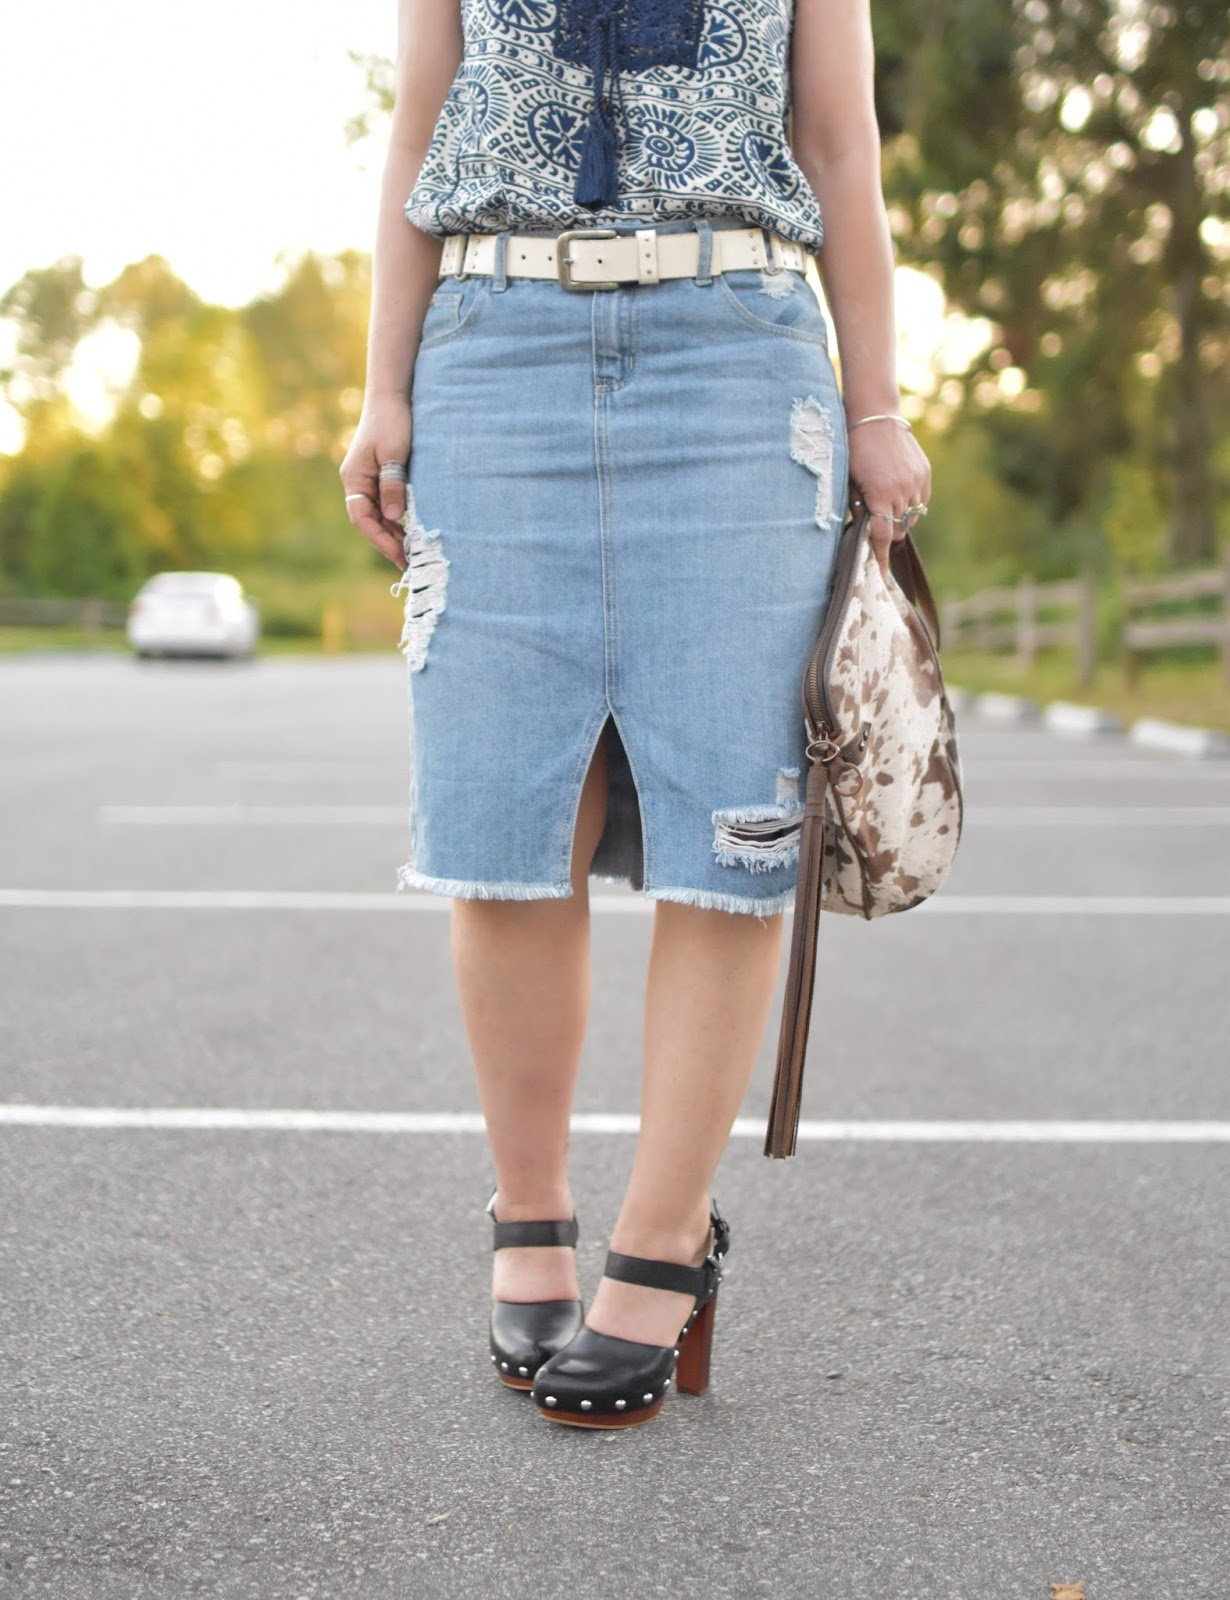 Search and destroy: Distressed denim midi-skirt, peasant top, and ...